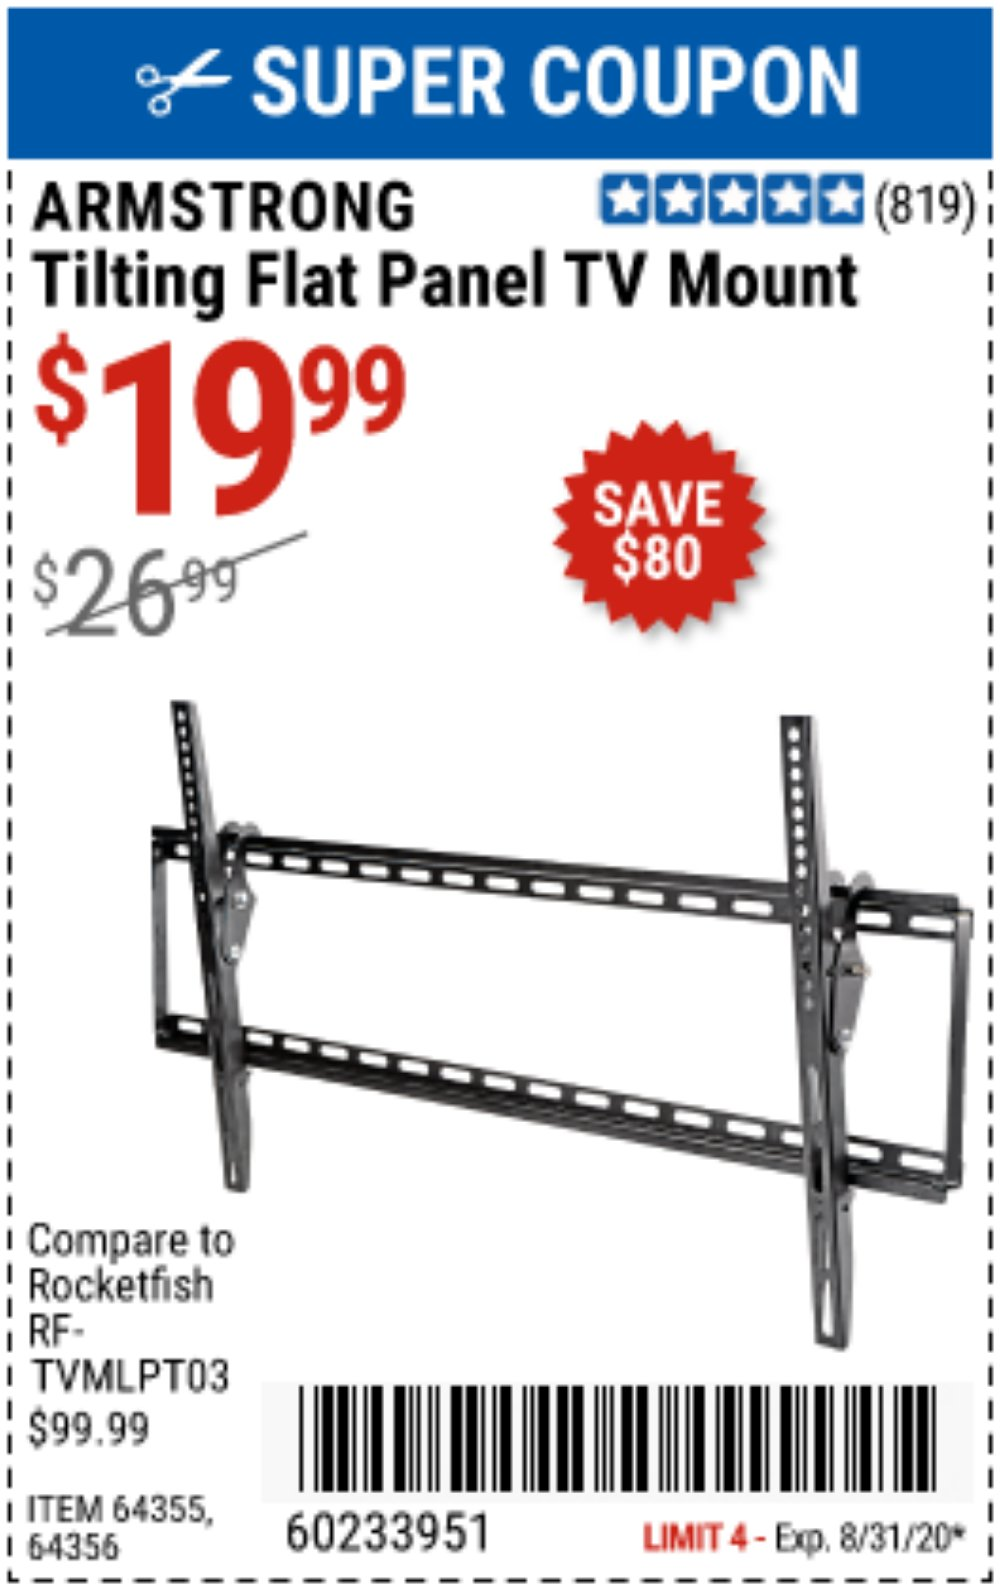 Harbor Freight Coupon, HF Coupons - ARMSTRONG Large Tilt Flat Panel TV Mount for $19.99